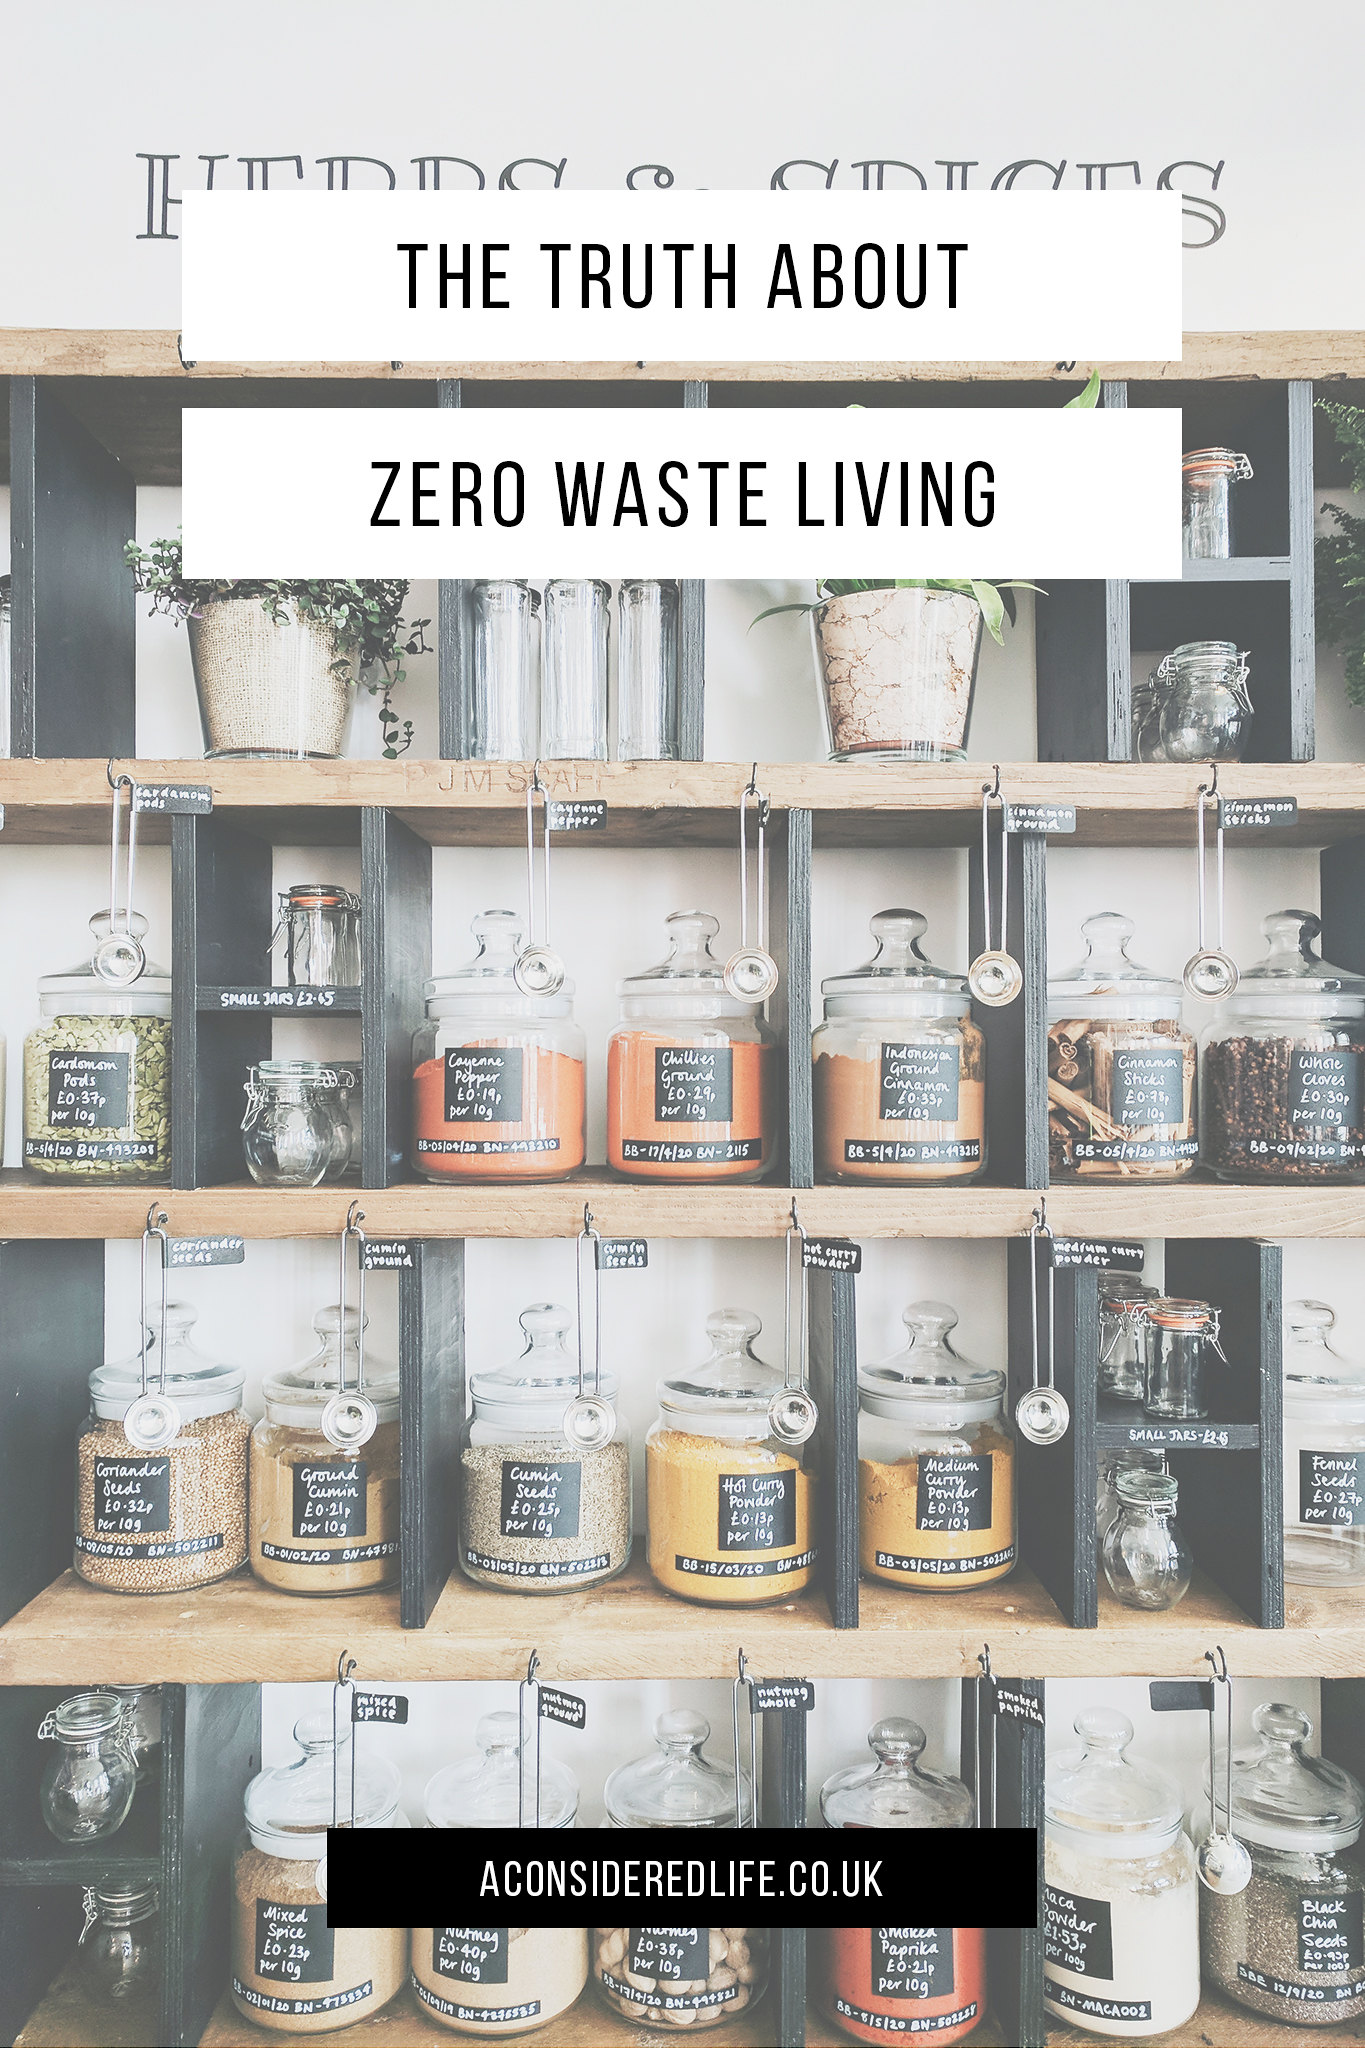 The Important Truths About Zero Waste